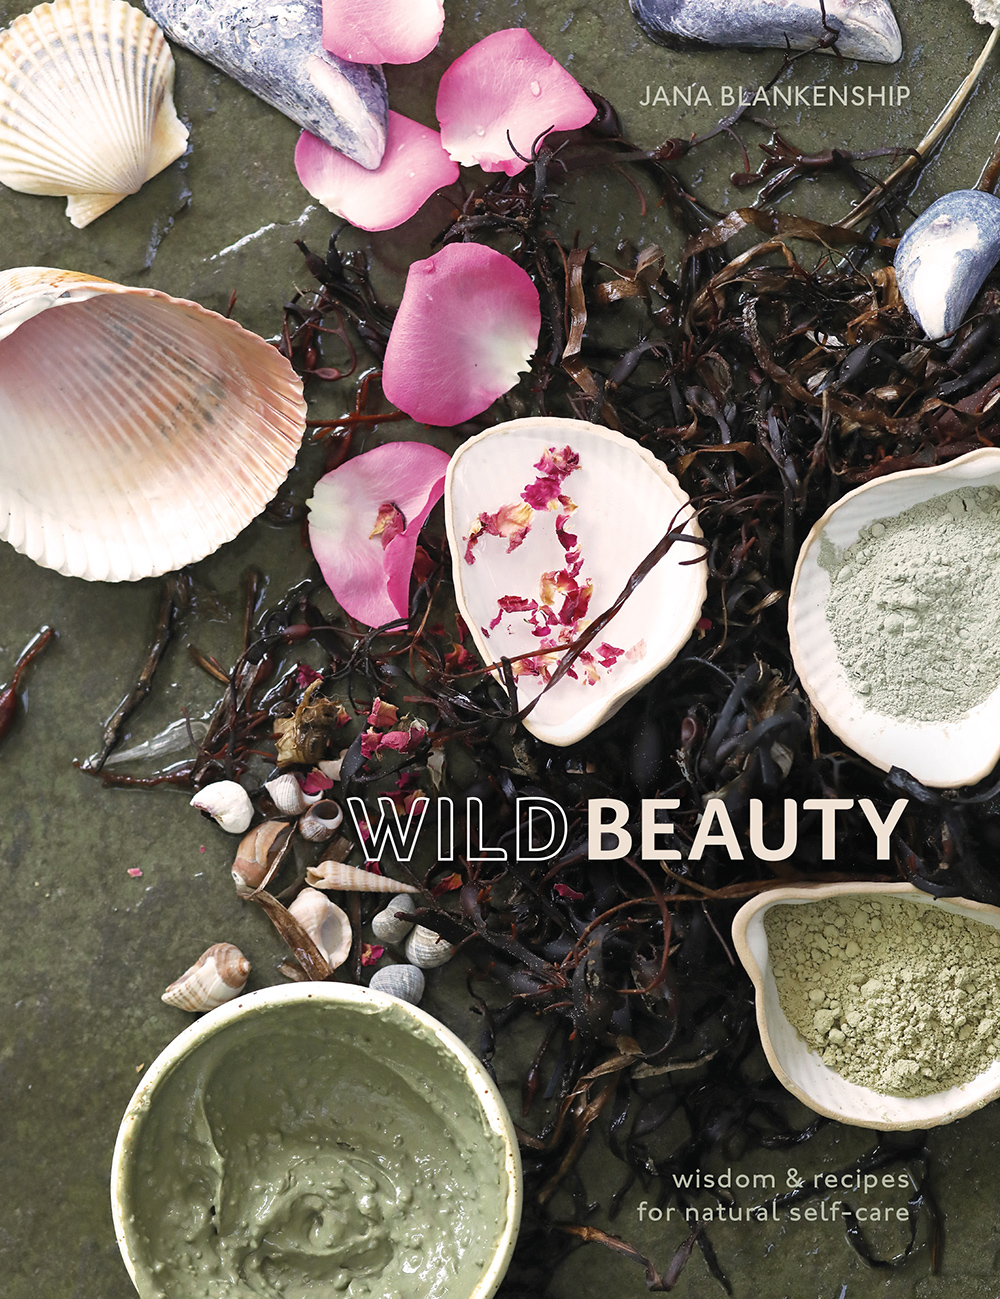 For more natural, DIY beauty products, check out Jana's book, Wild Beauty -